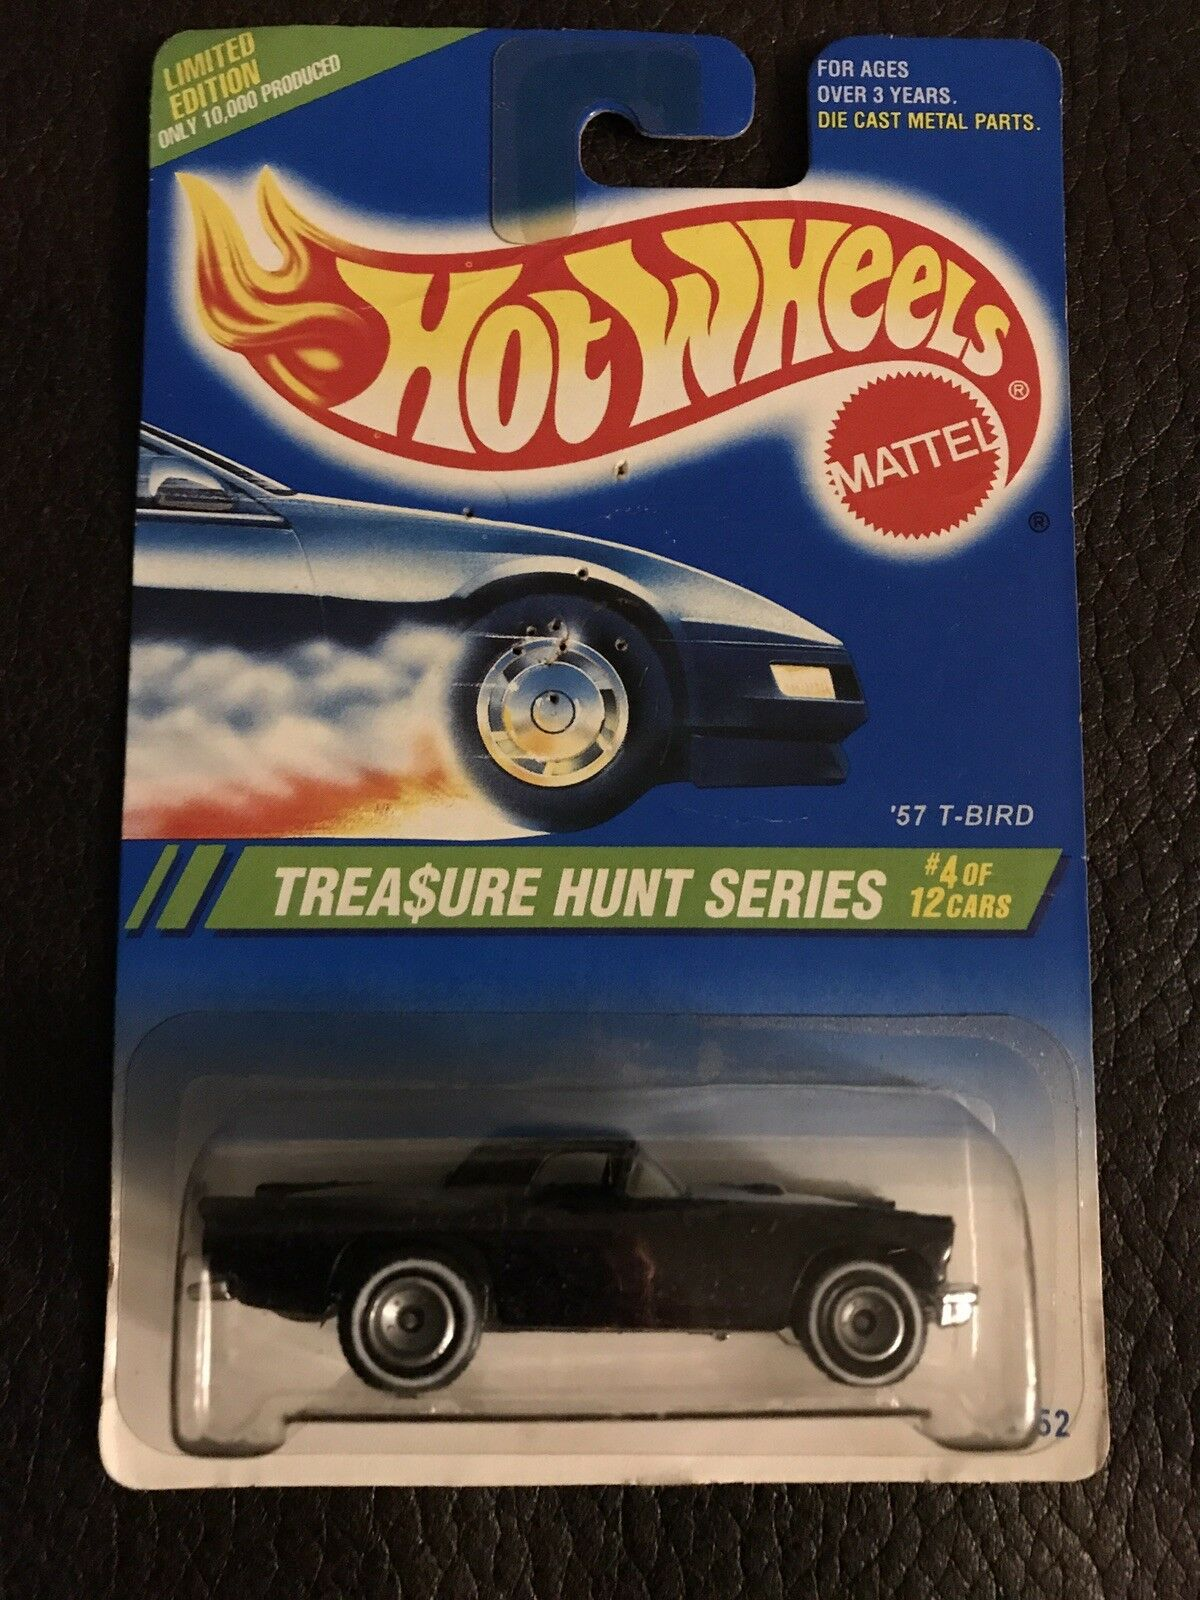 1SUPER HUNT 4 12 '57 T-BIRD -HOT WHEELS-TREASURE HUNT RARE